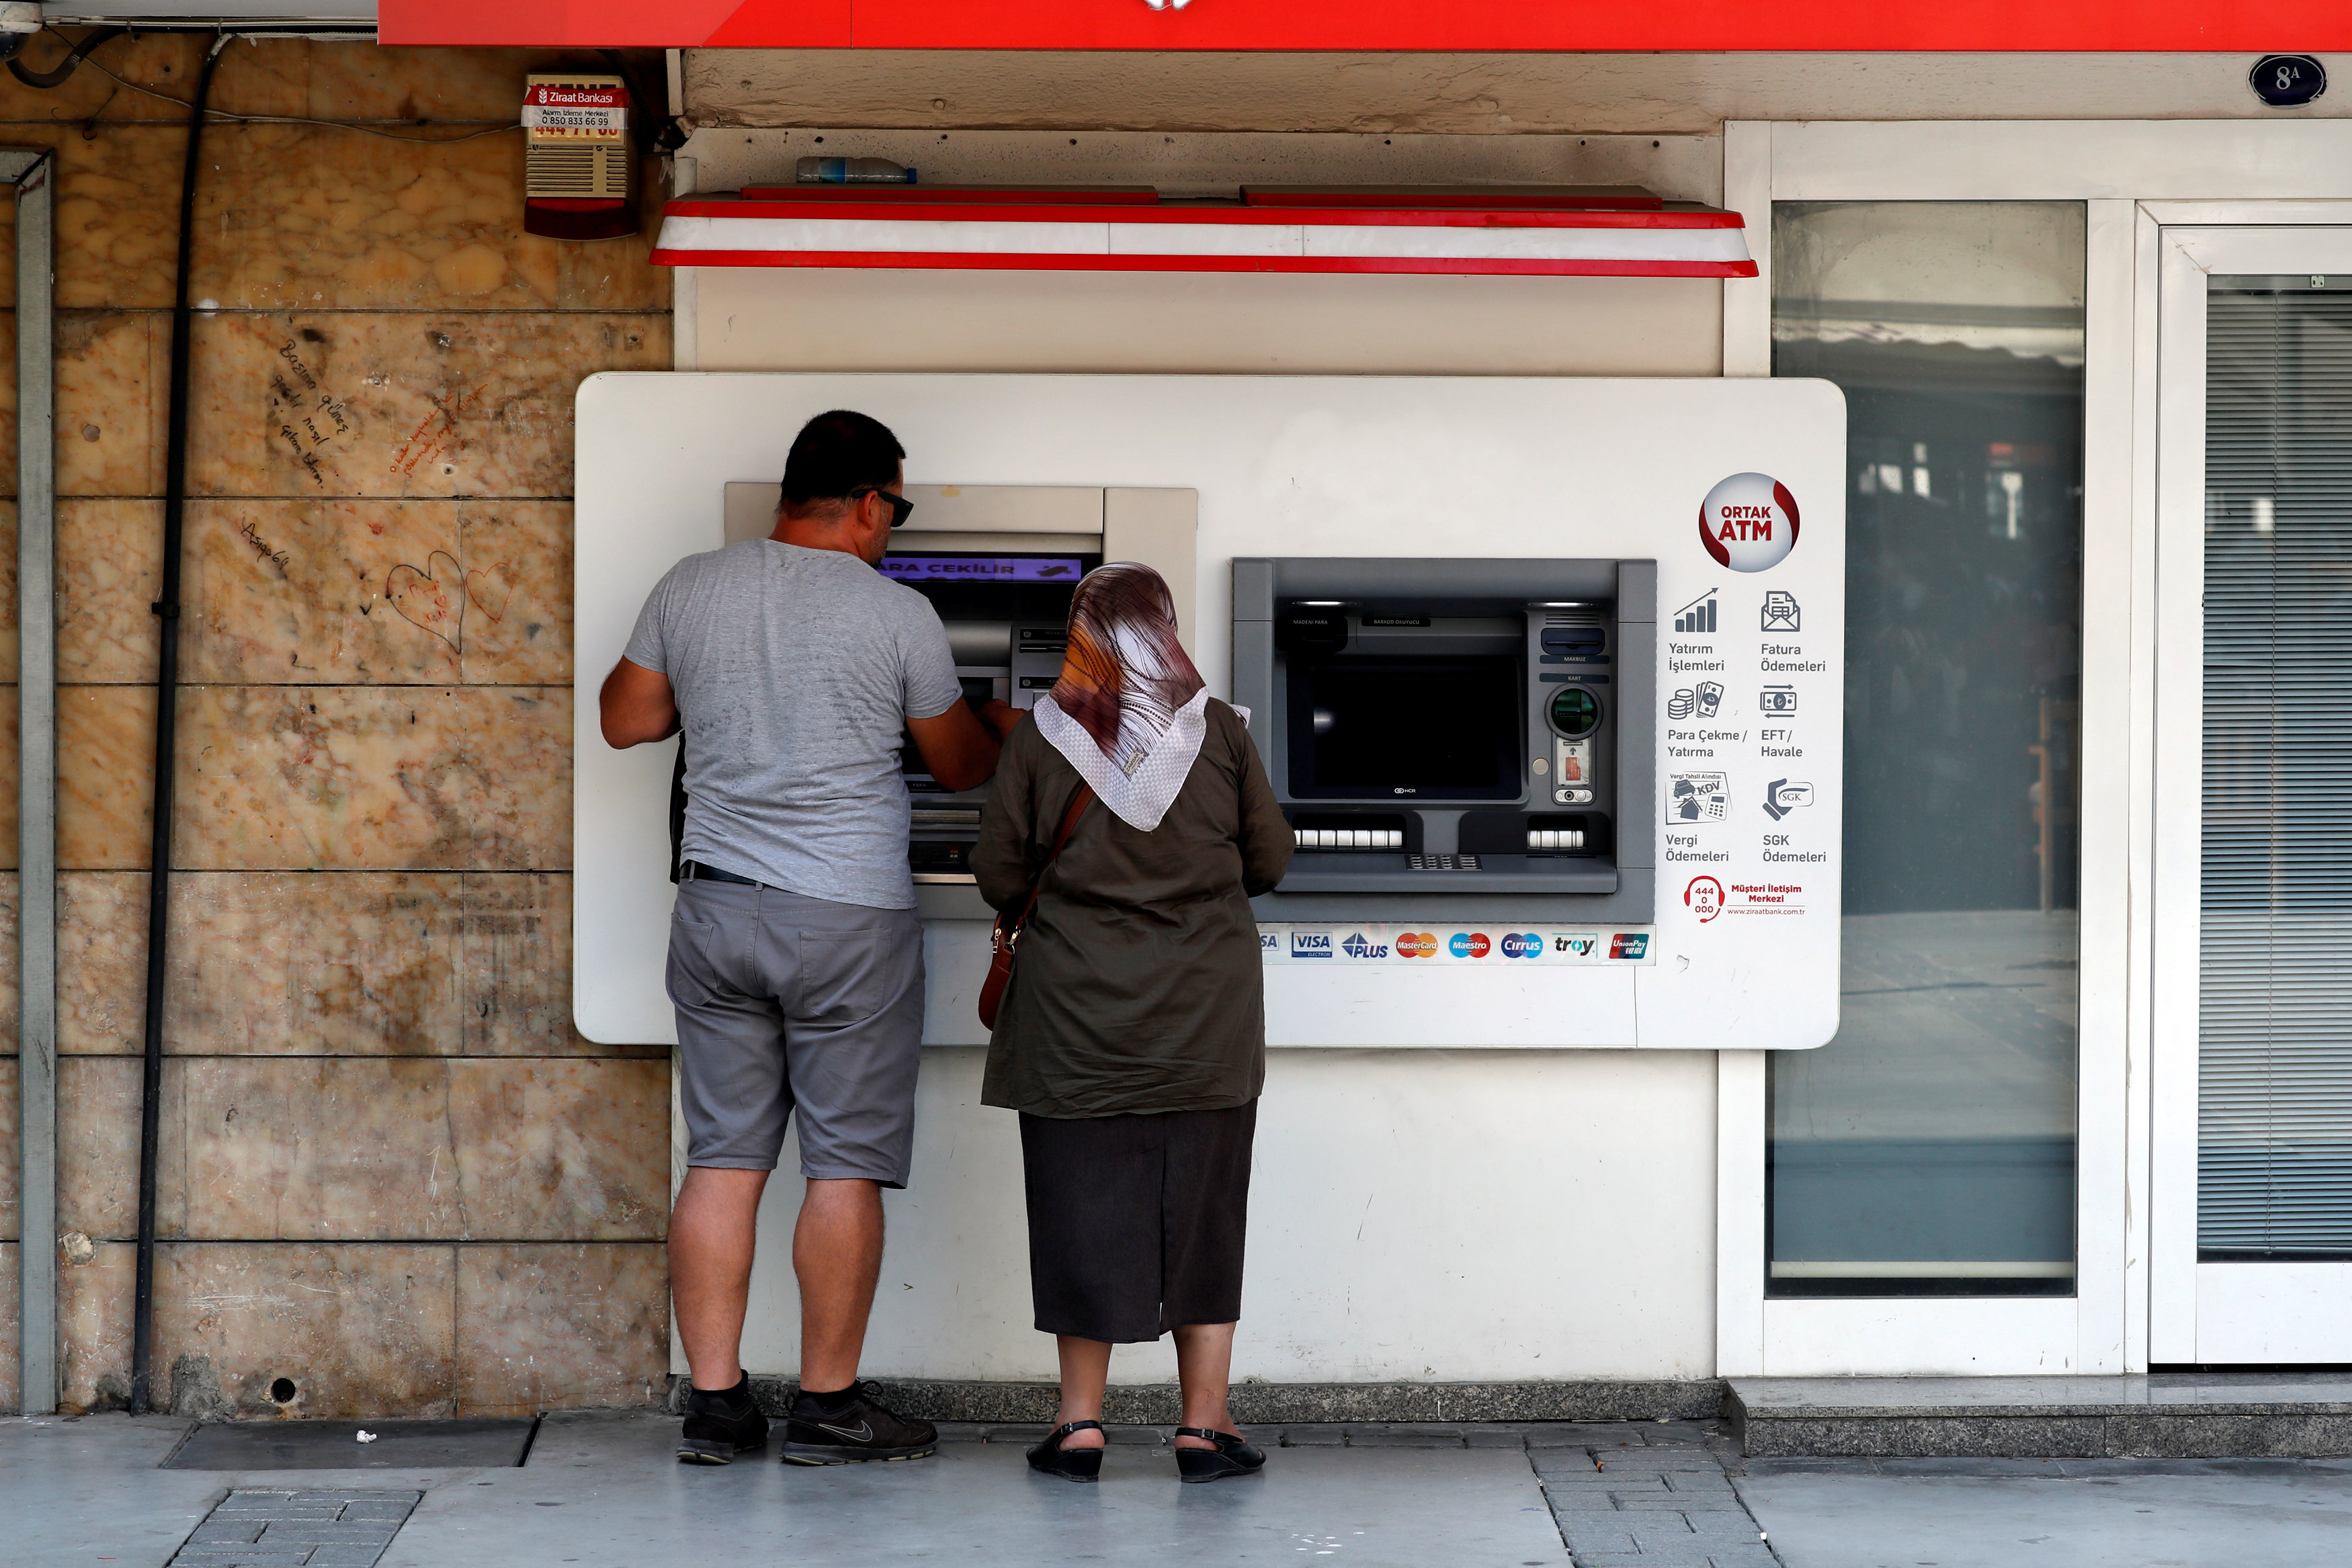 People withdraw money from a bank ATM in Izmir.